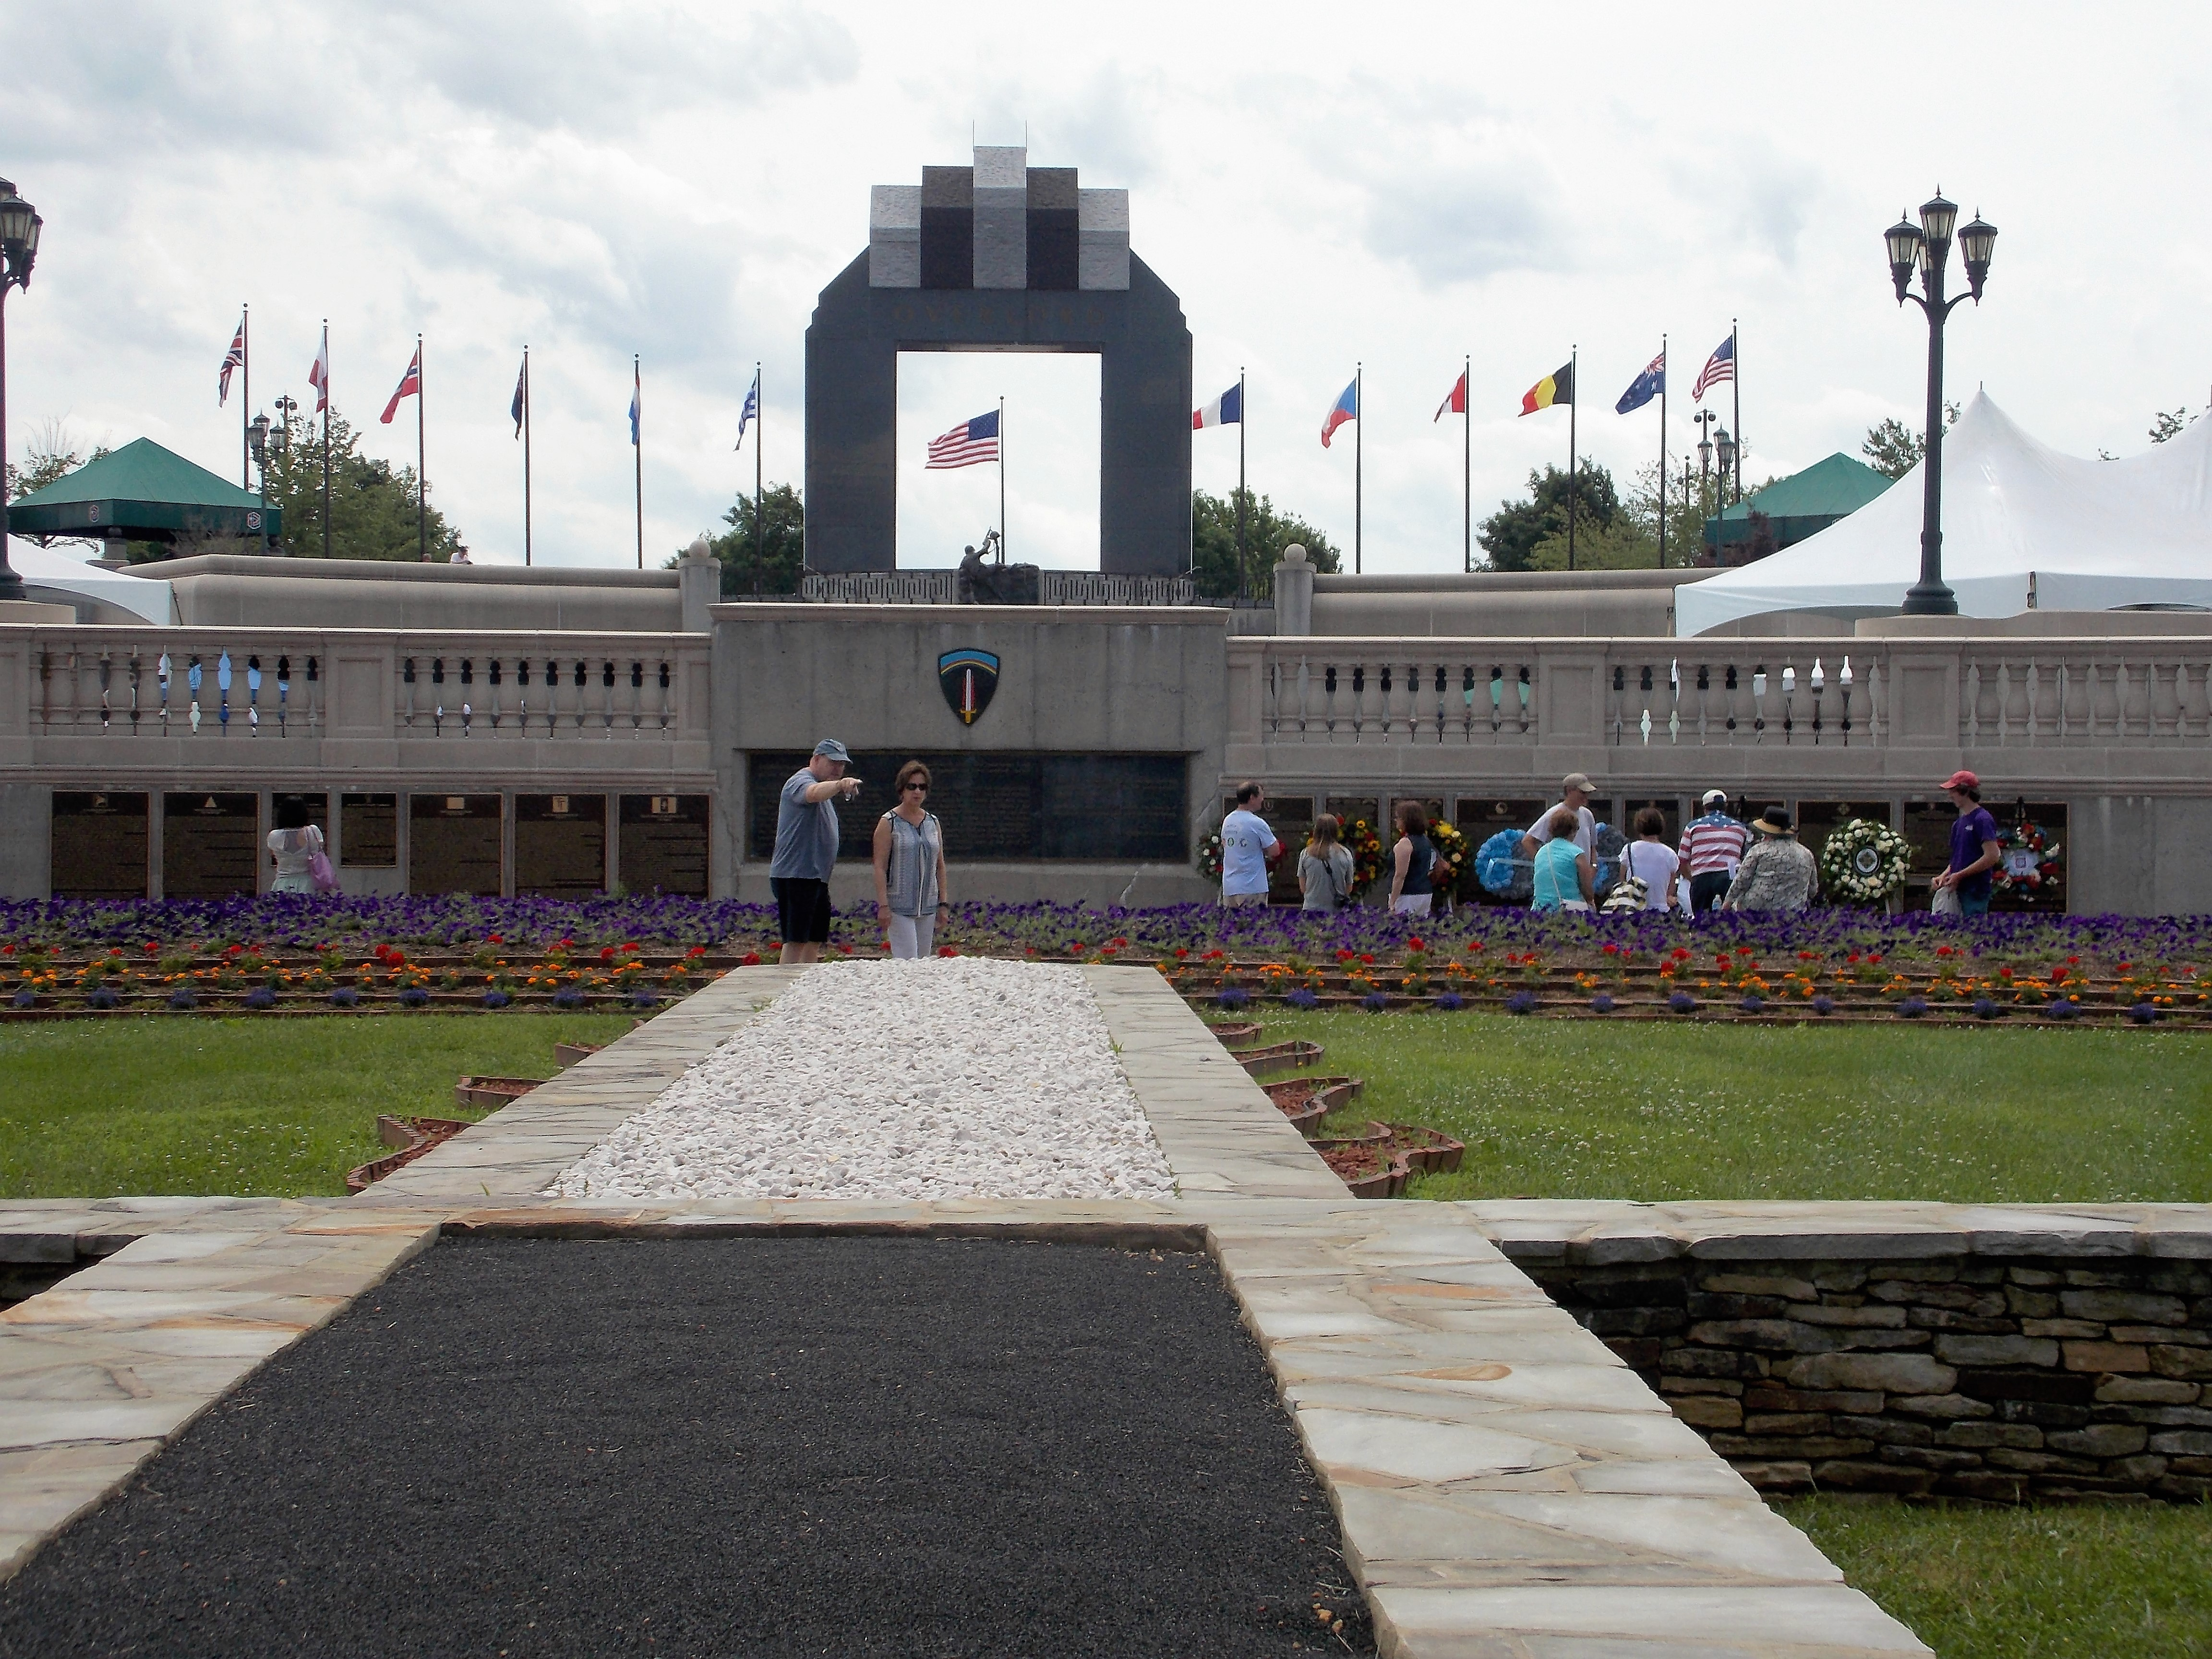 Monday Was Busy Since It Was The Anniversary Of The Invasion So Hundreds Attended The Ceremony With Many Staying Afterward To Walk The Grounds